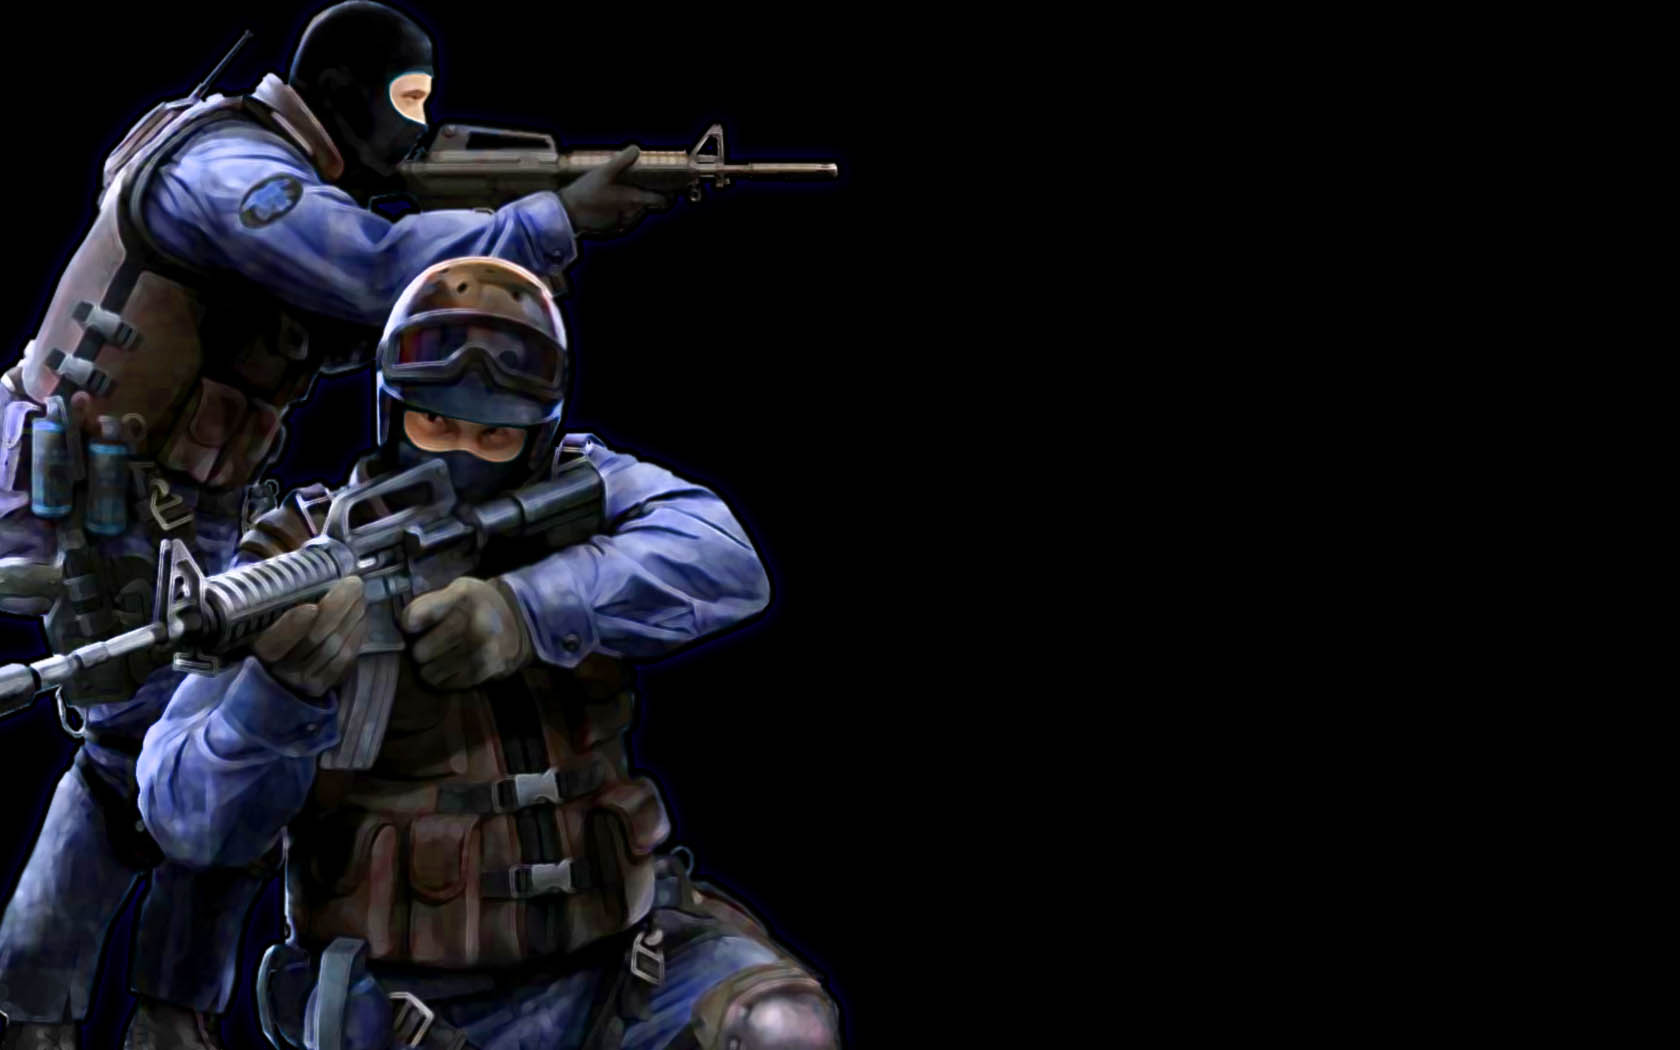 Wallpaper counter strike download mac   crackerjack photos 1680x1050